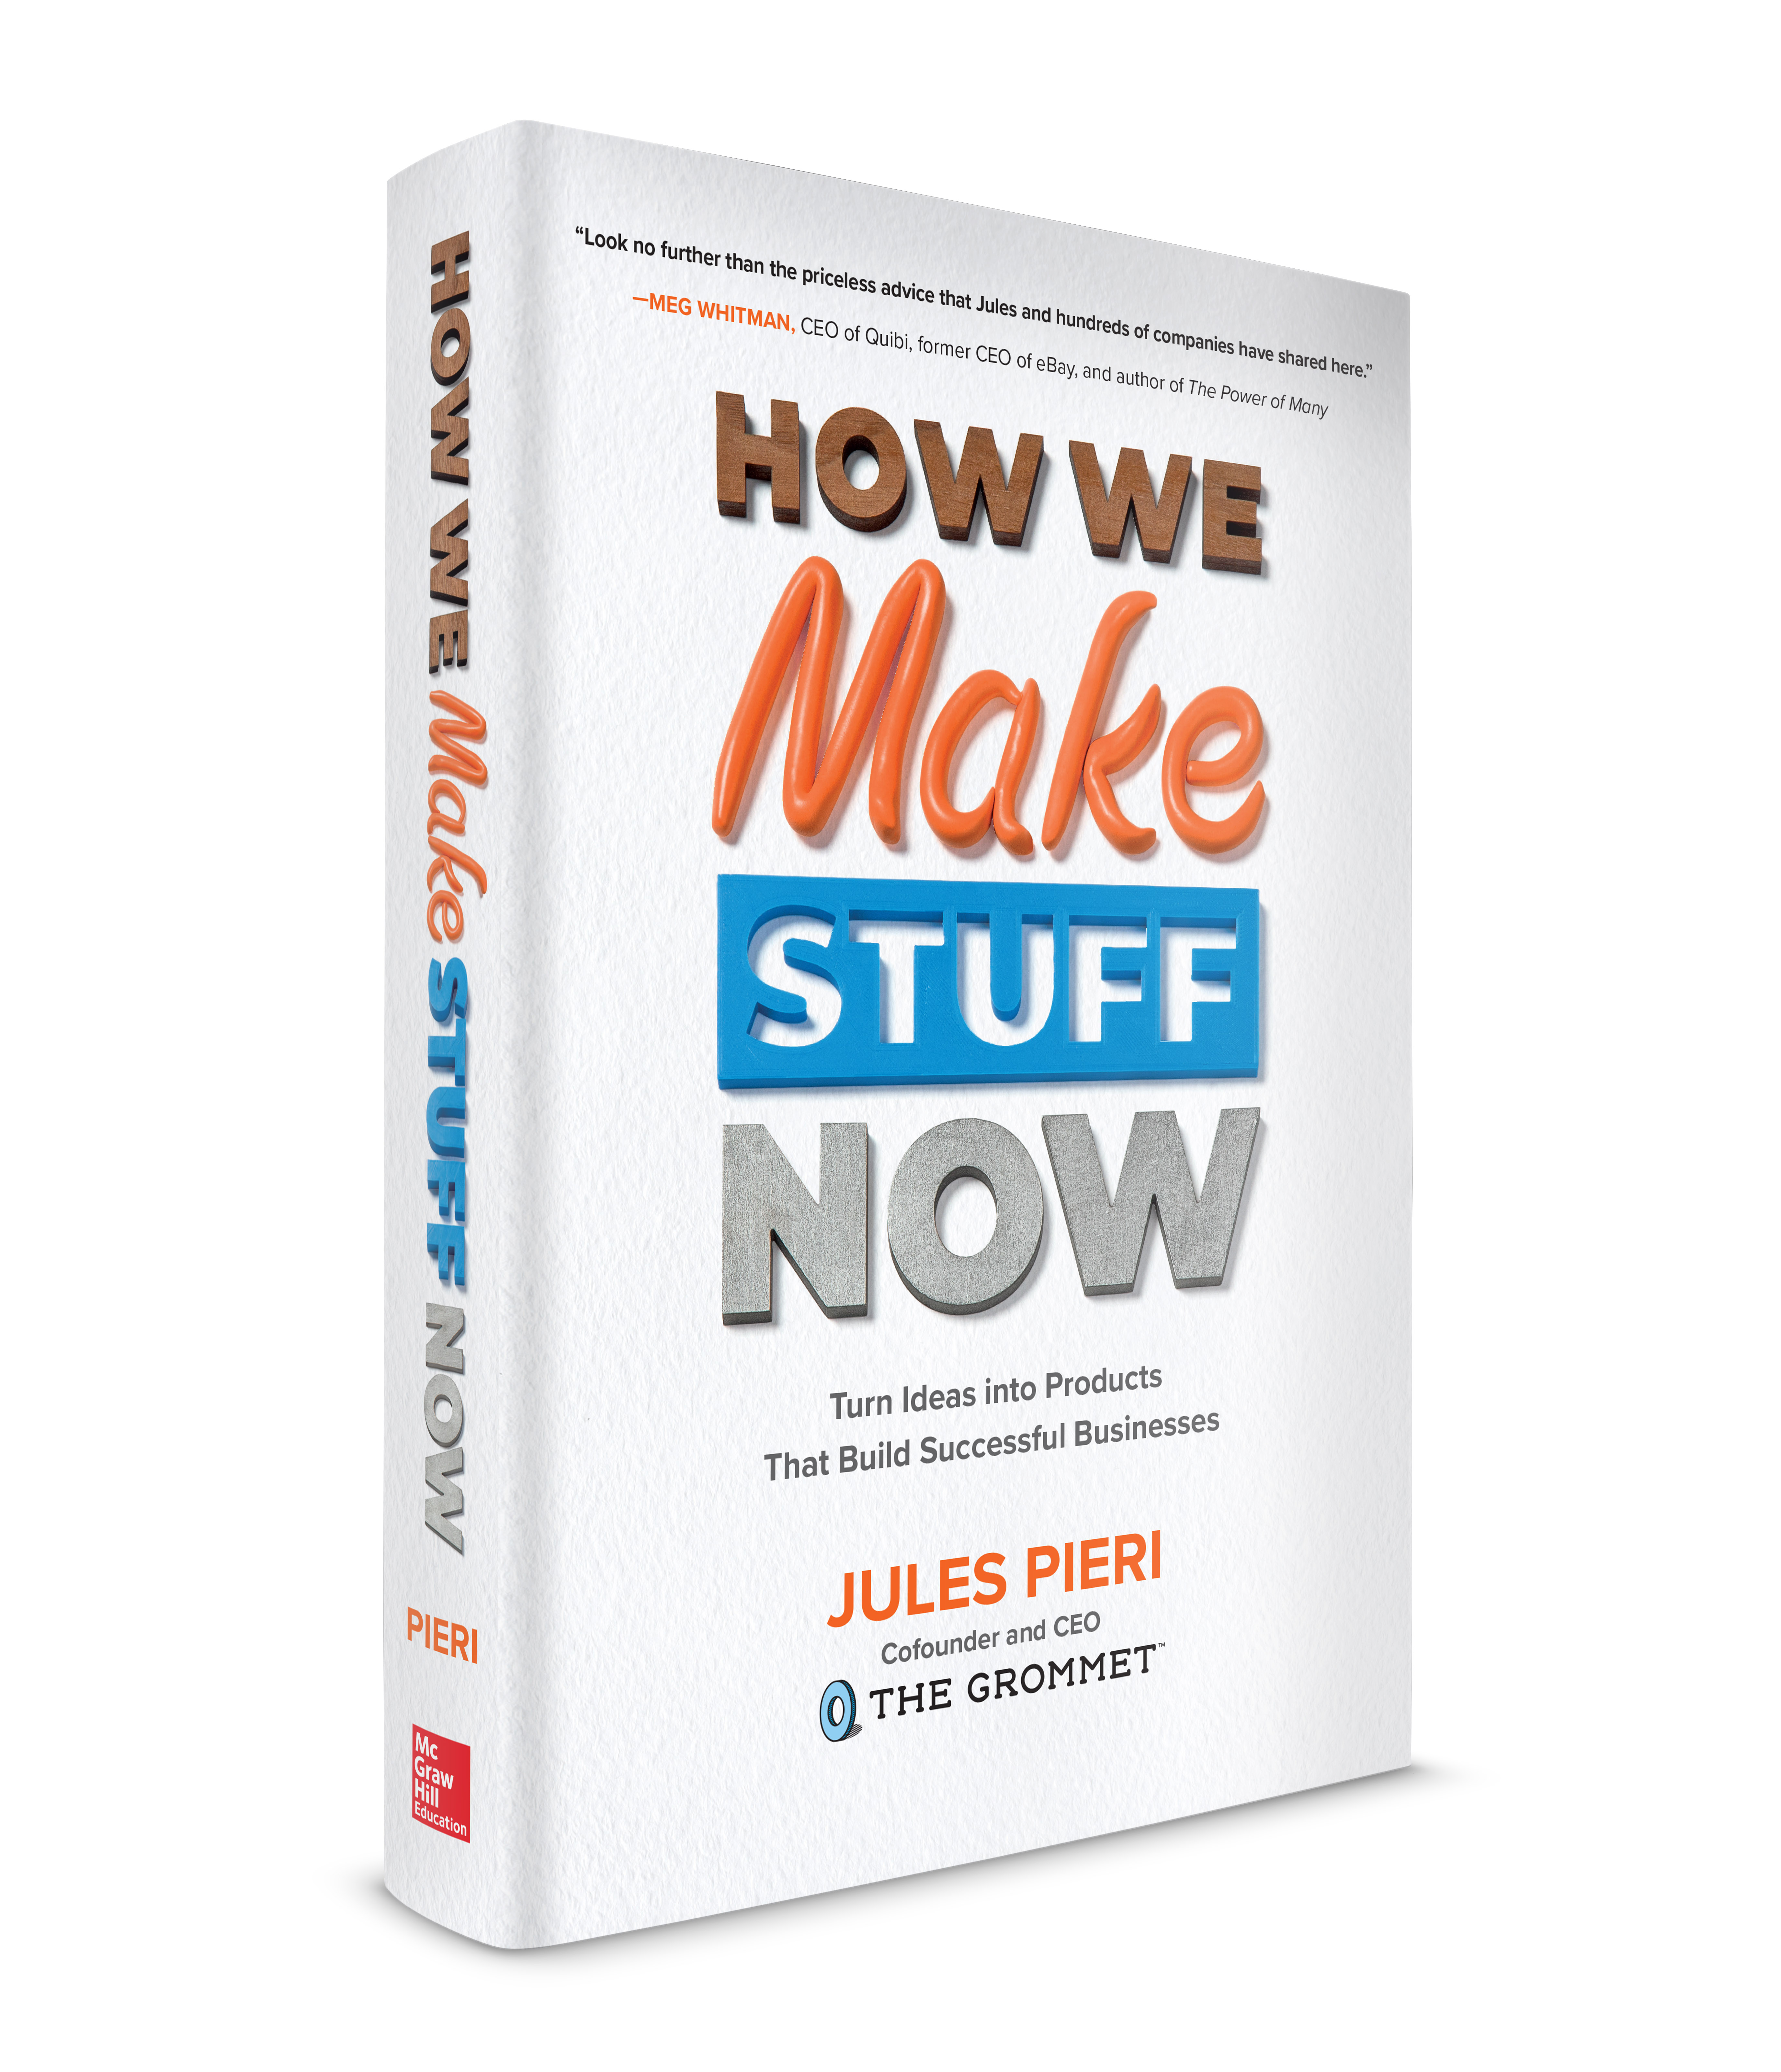 Cover of the How We Make Stuff Now book